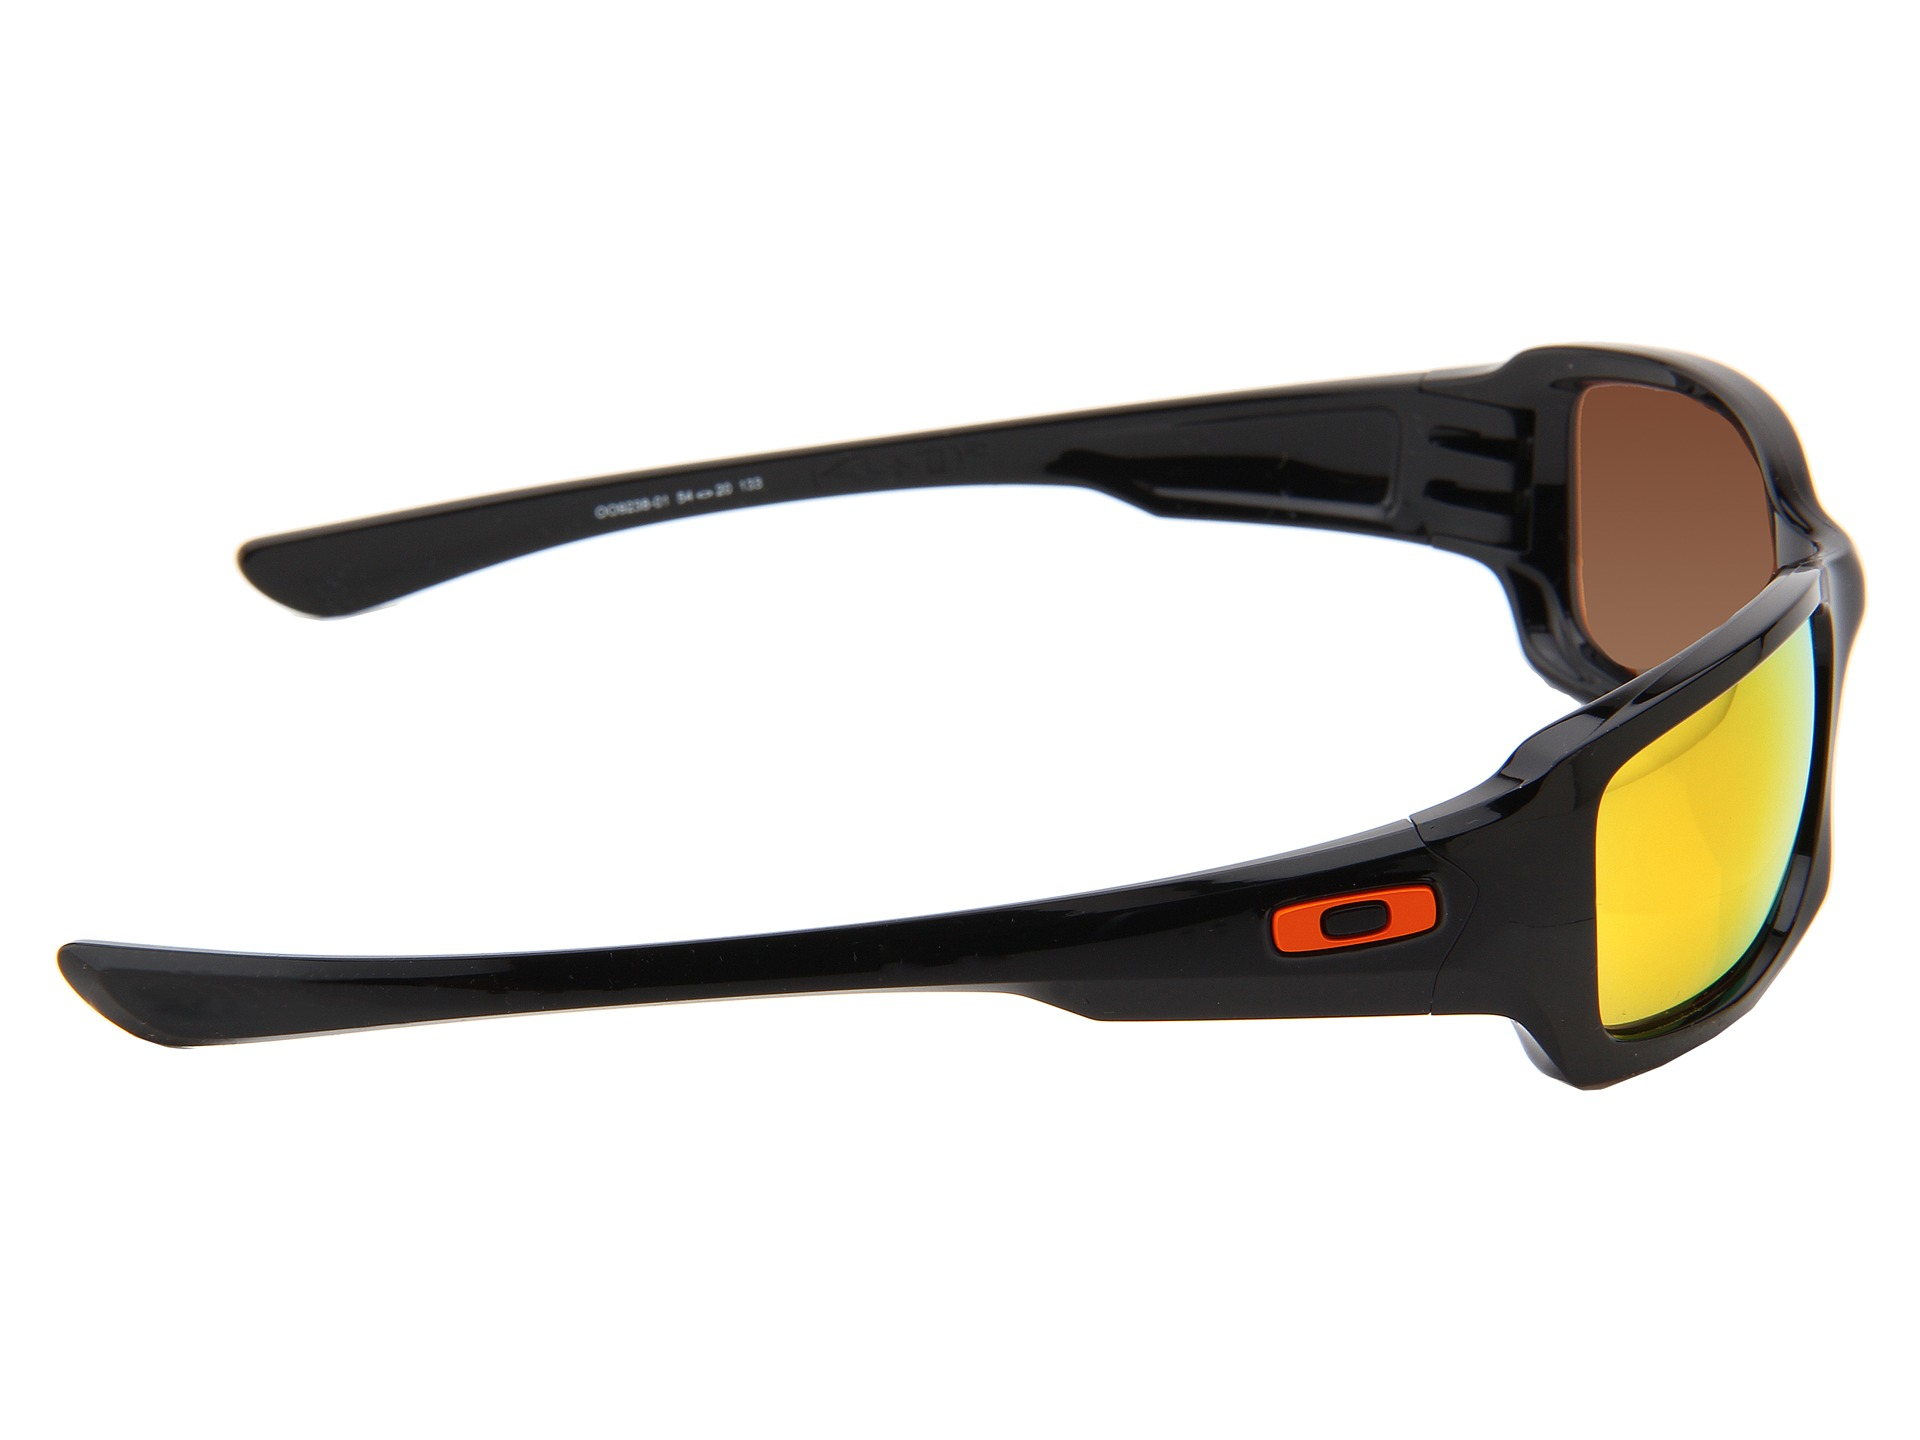 oakley glass aliexpress  another